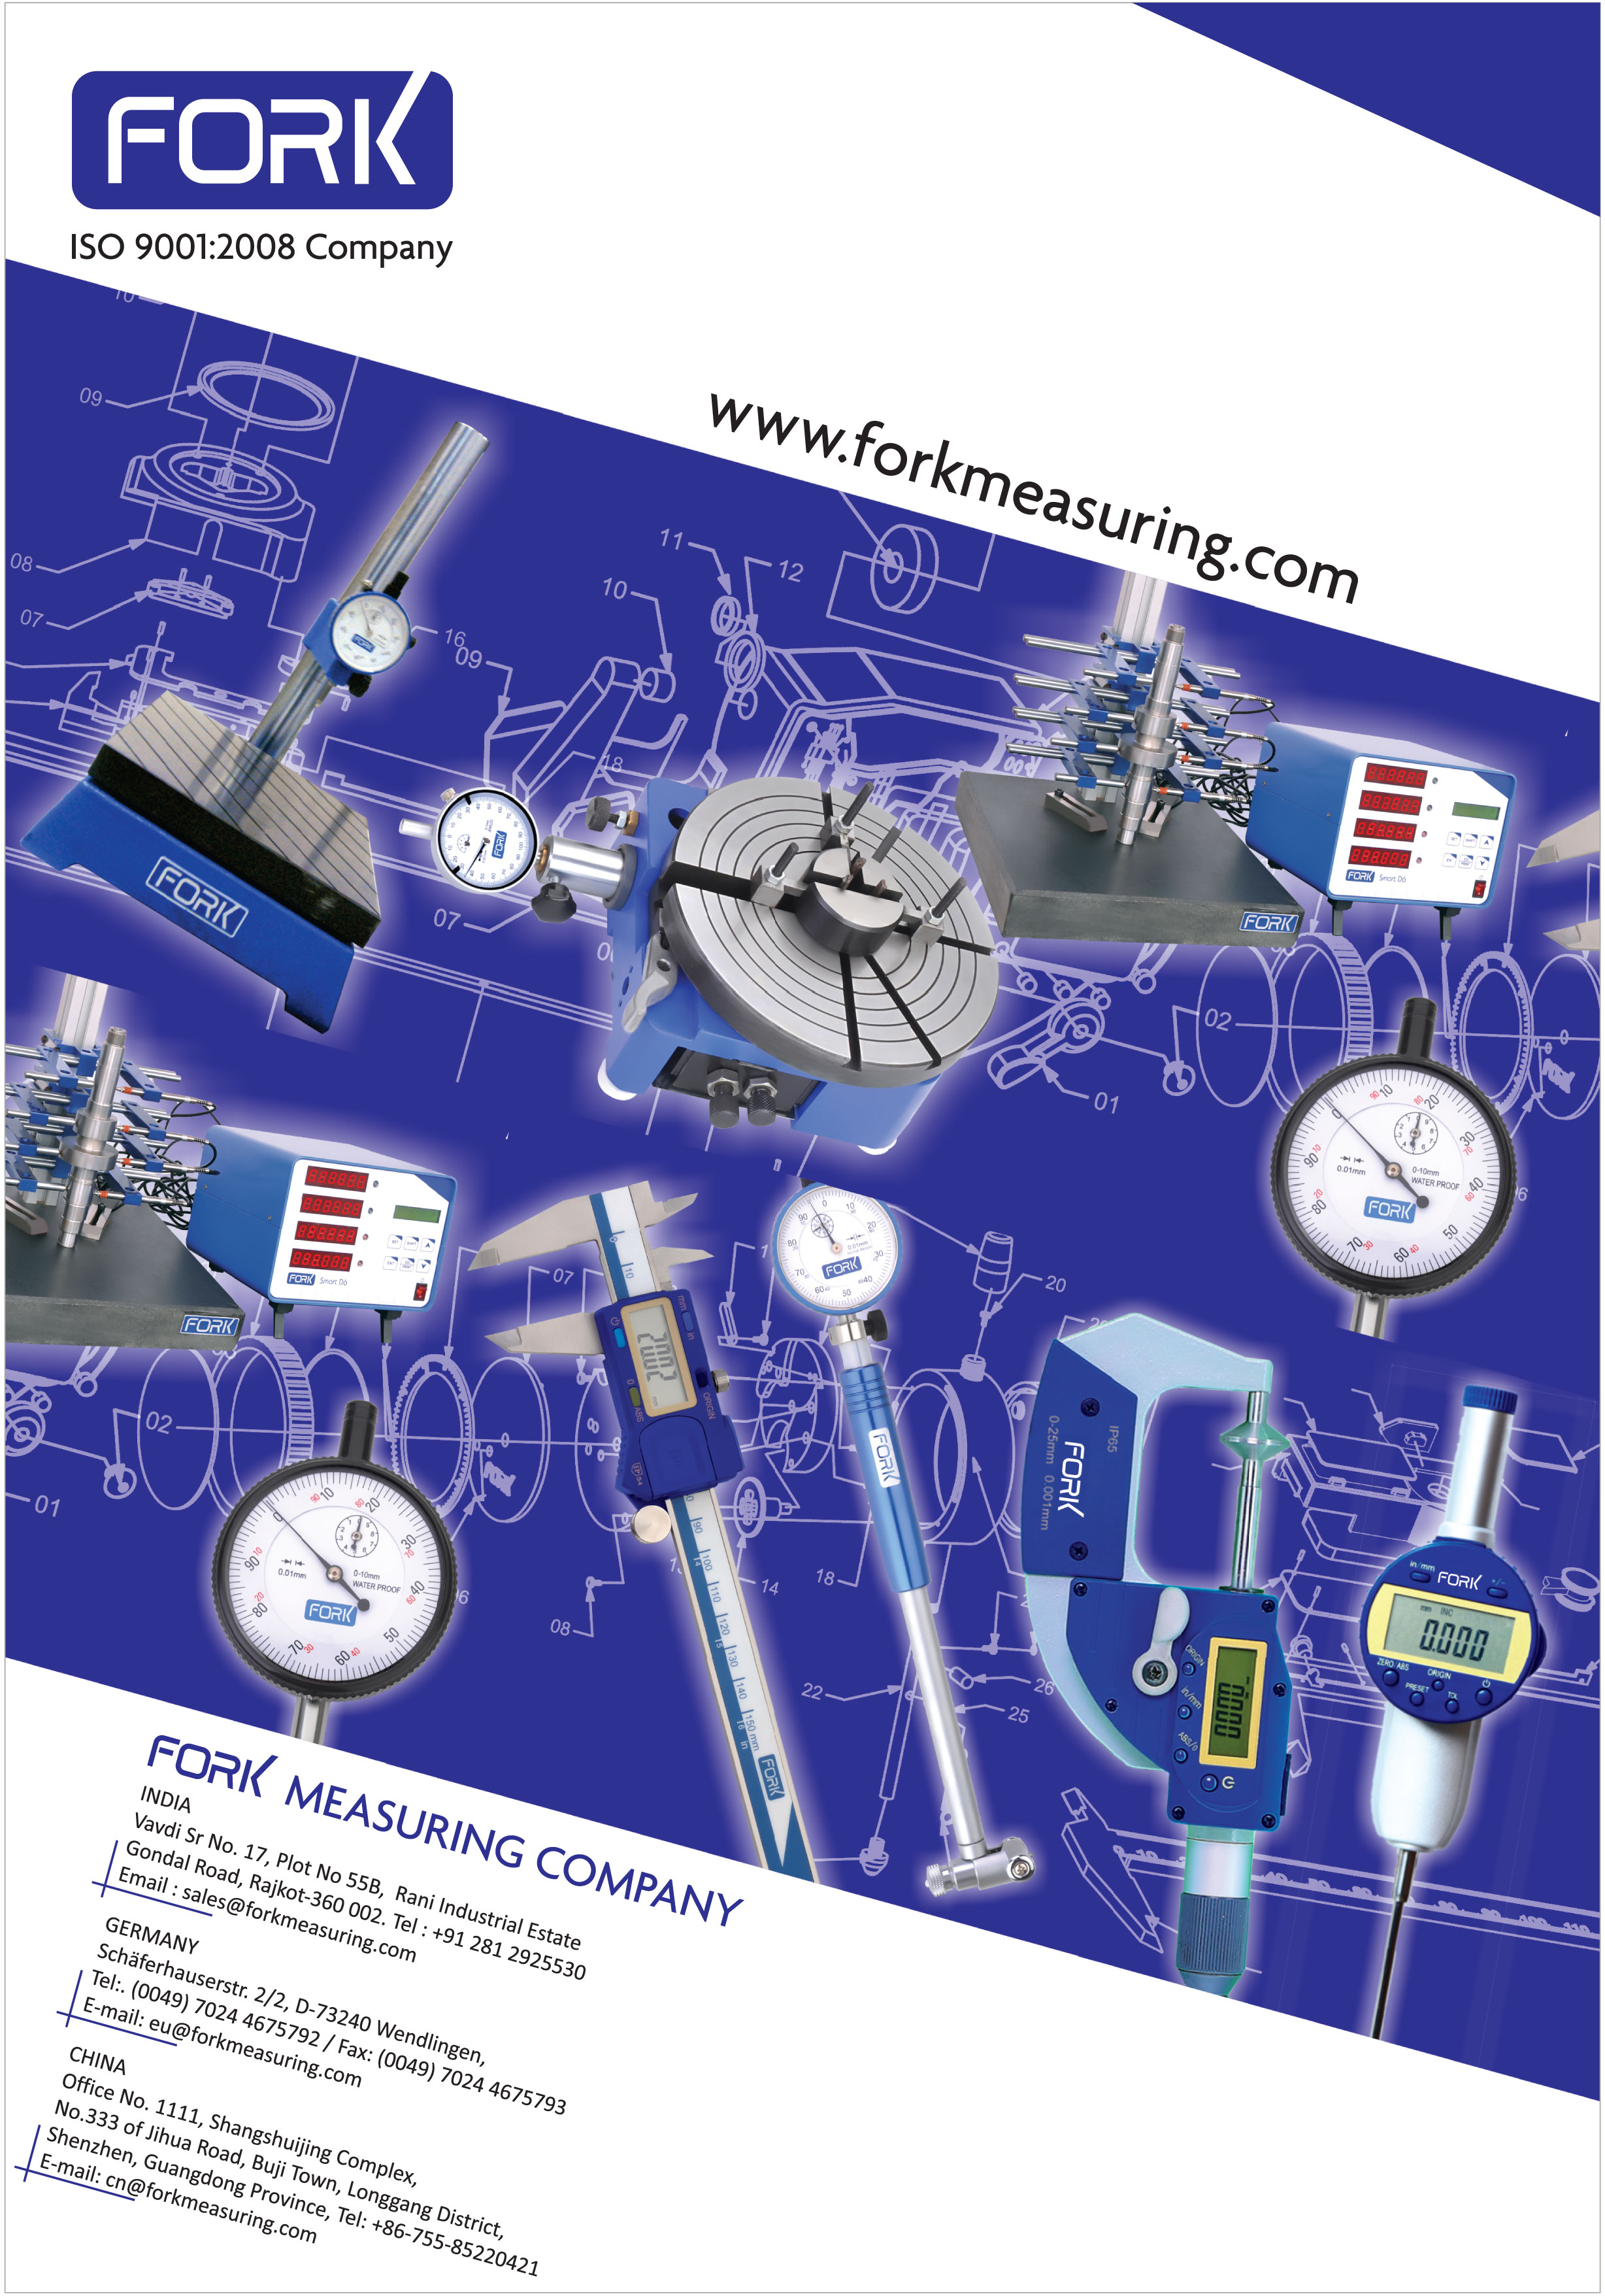 Lapping Machines, Surface Plates, Bench Center, Dial Calibration Testers, Calibration Masters, Performance Guages, Dial Indicators, Calipers, Digital Calipers, Micrometers, Length Comparator,Indicators, Calipers